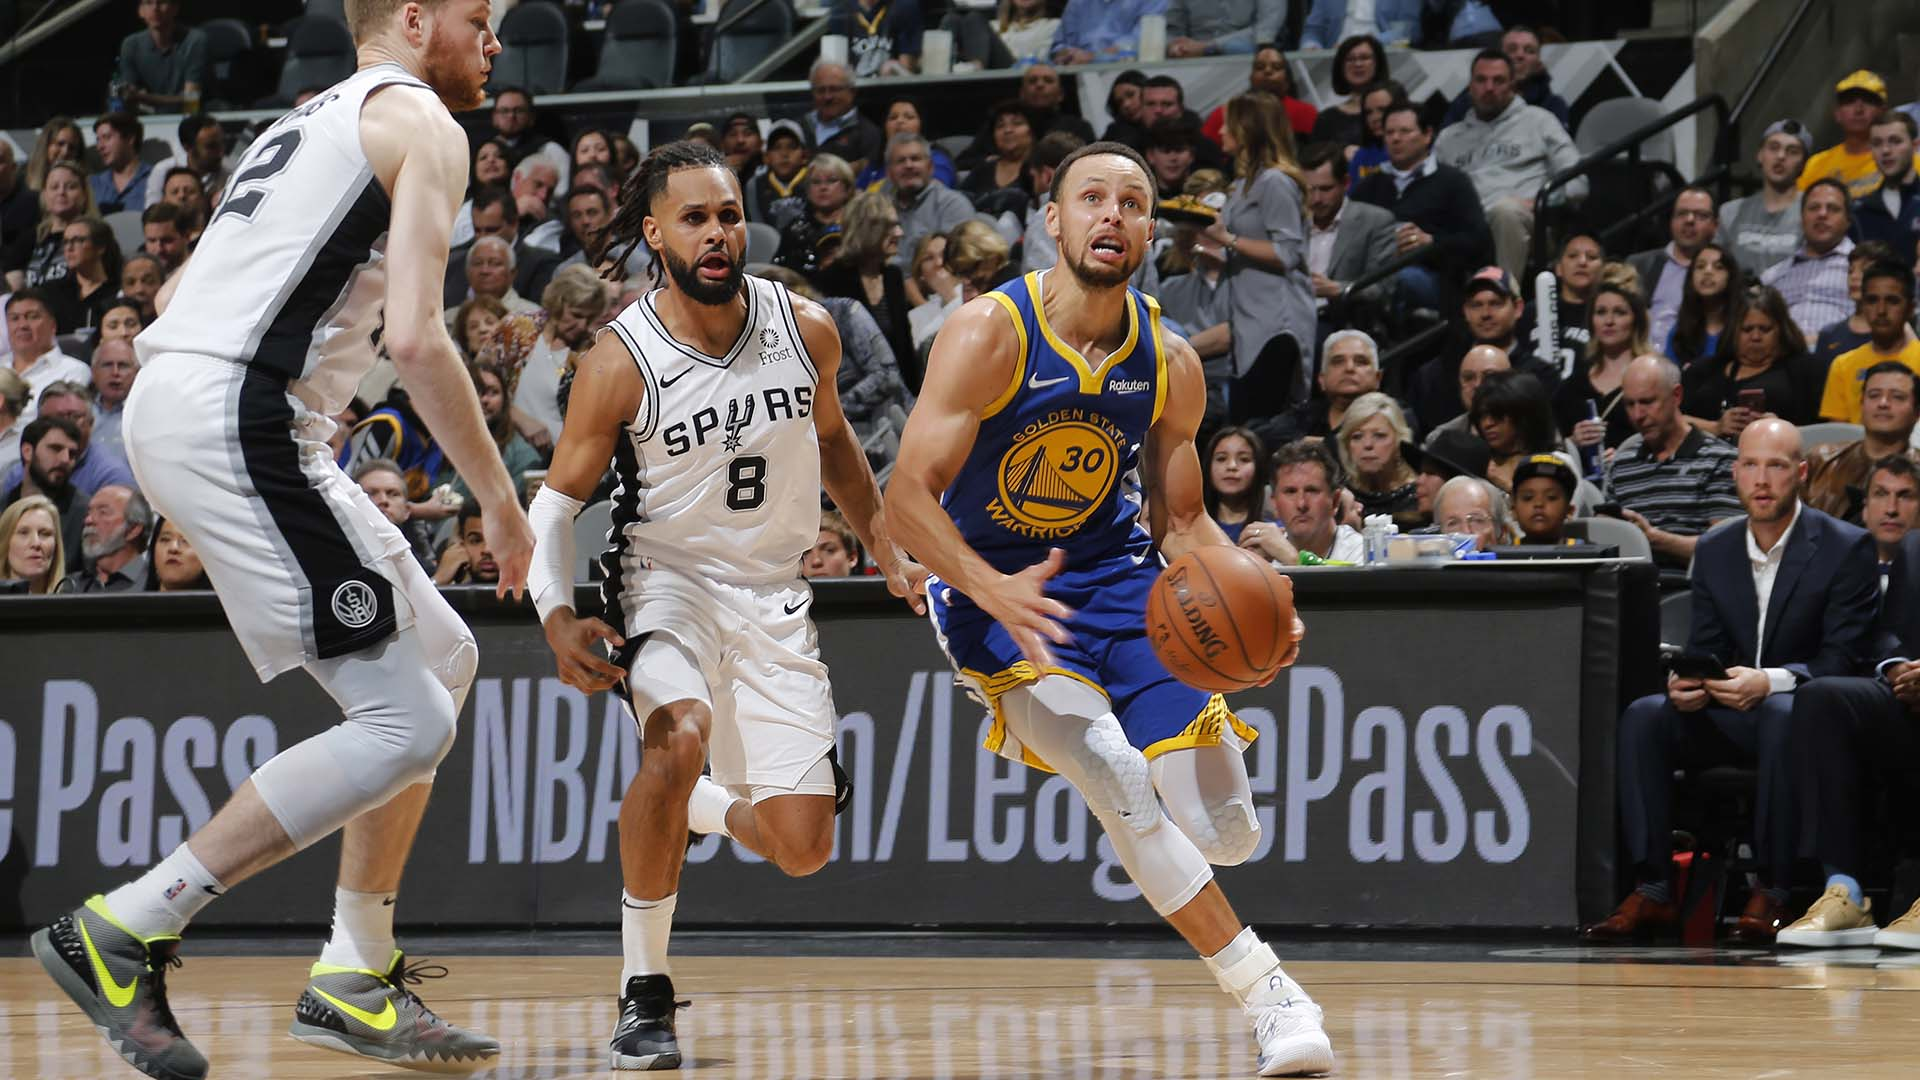 Takeaways from the San Antonio Spurs tough win over the Golden State Warriors